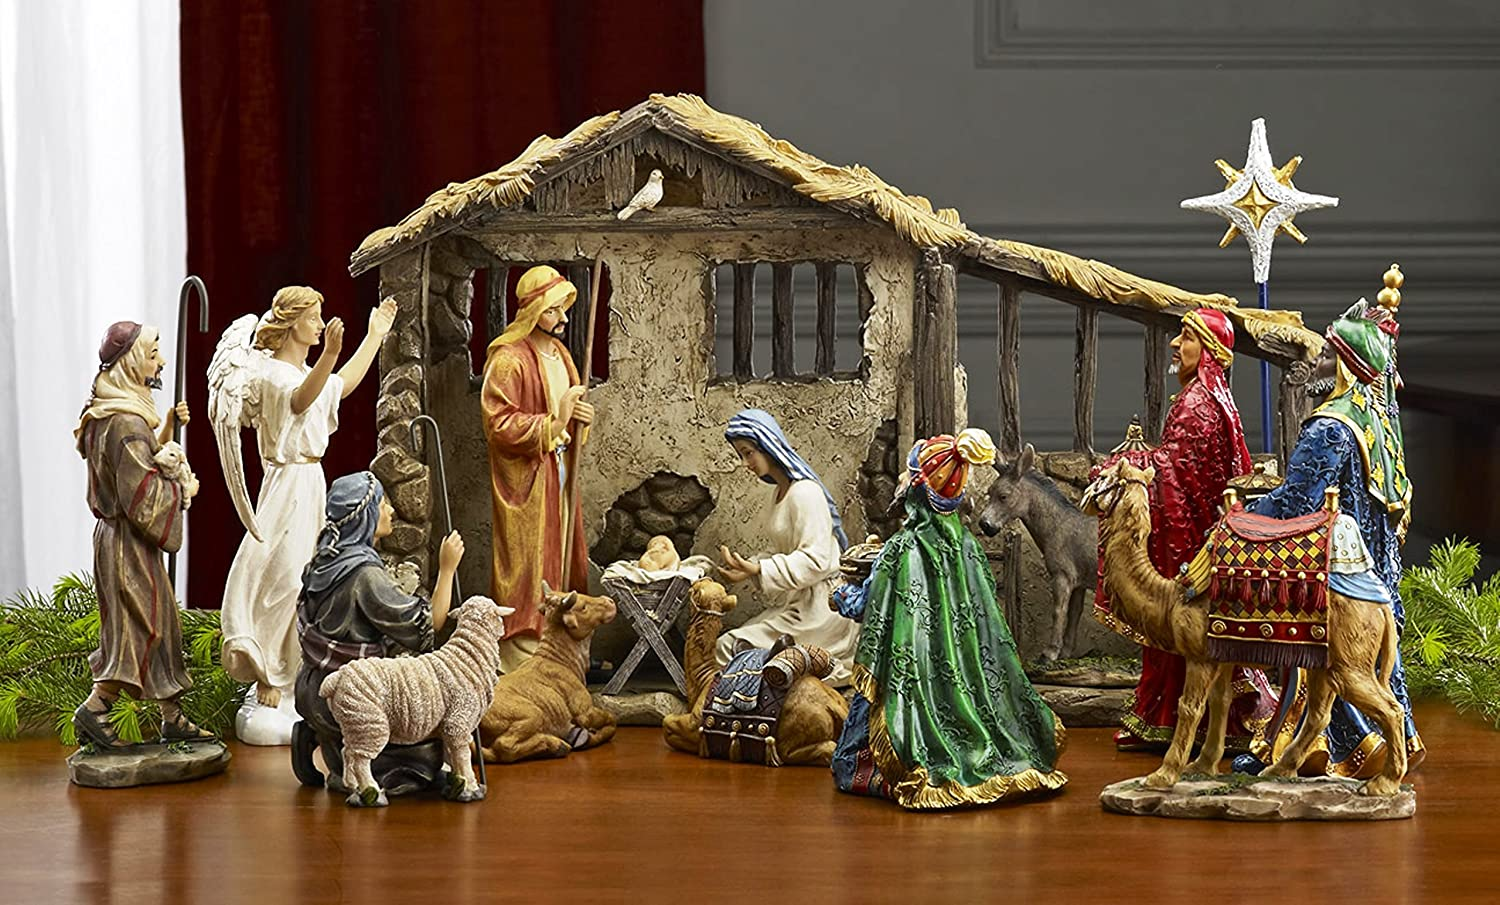 Amazoncom Deluxe Edition 16 Piece 10 Inch Christmas Nativity Set